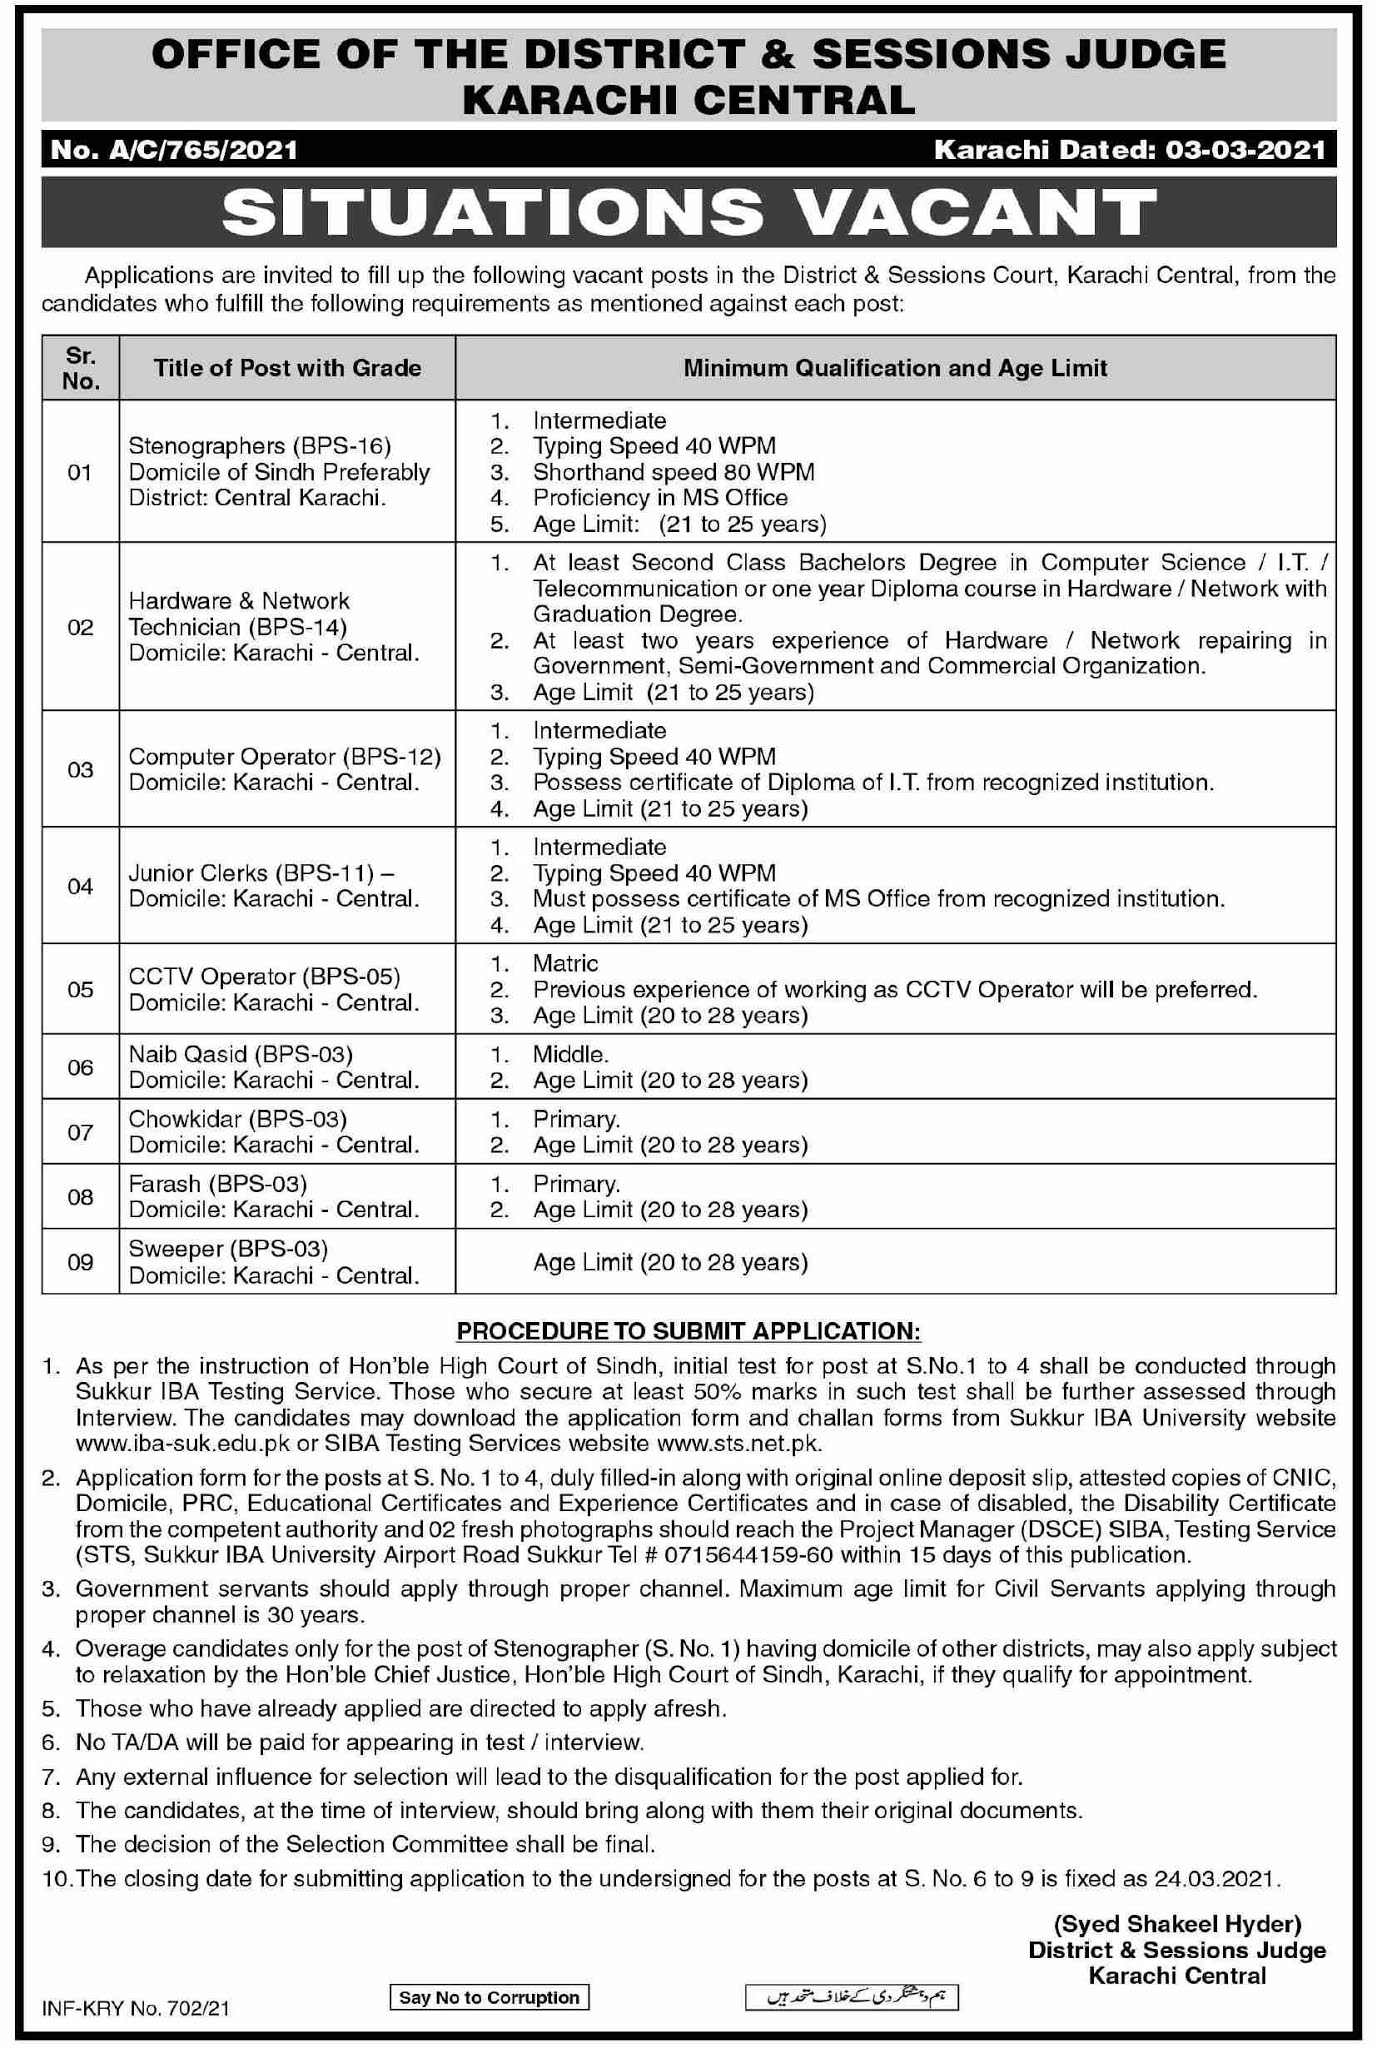 www.sts.net.pk - www.iba-suk.edu.pk - Download Job Application and Challan Form - District & Session Court Jobs 2021 in Pakistan